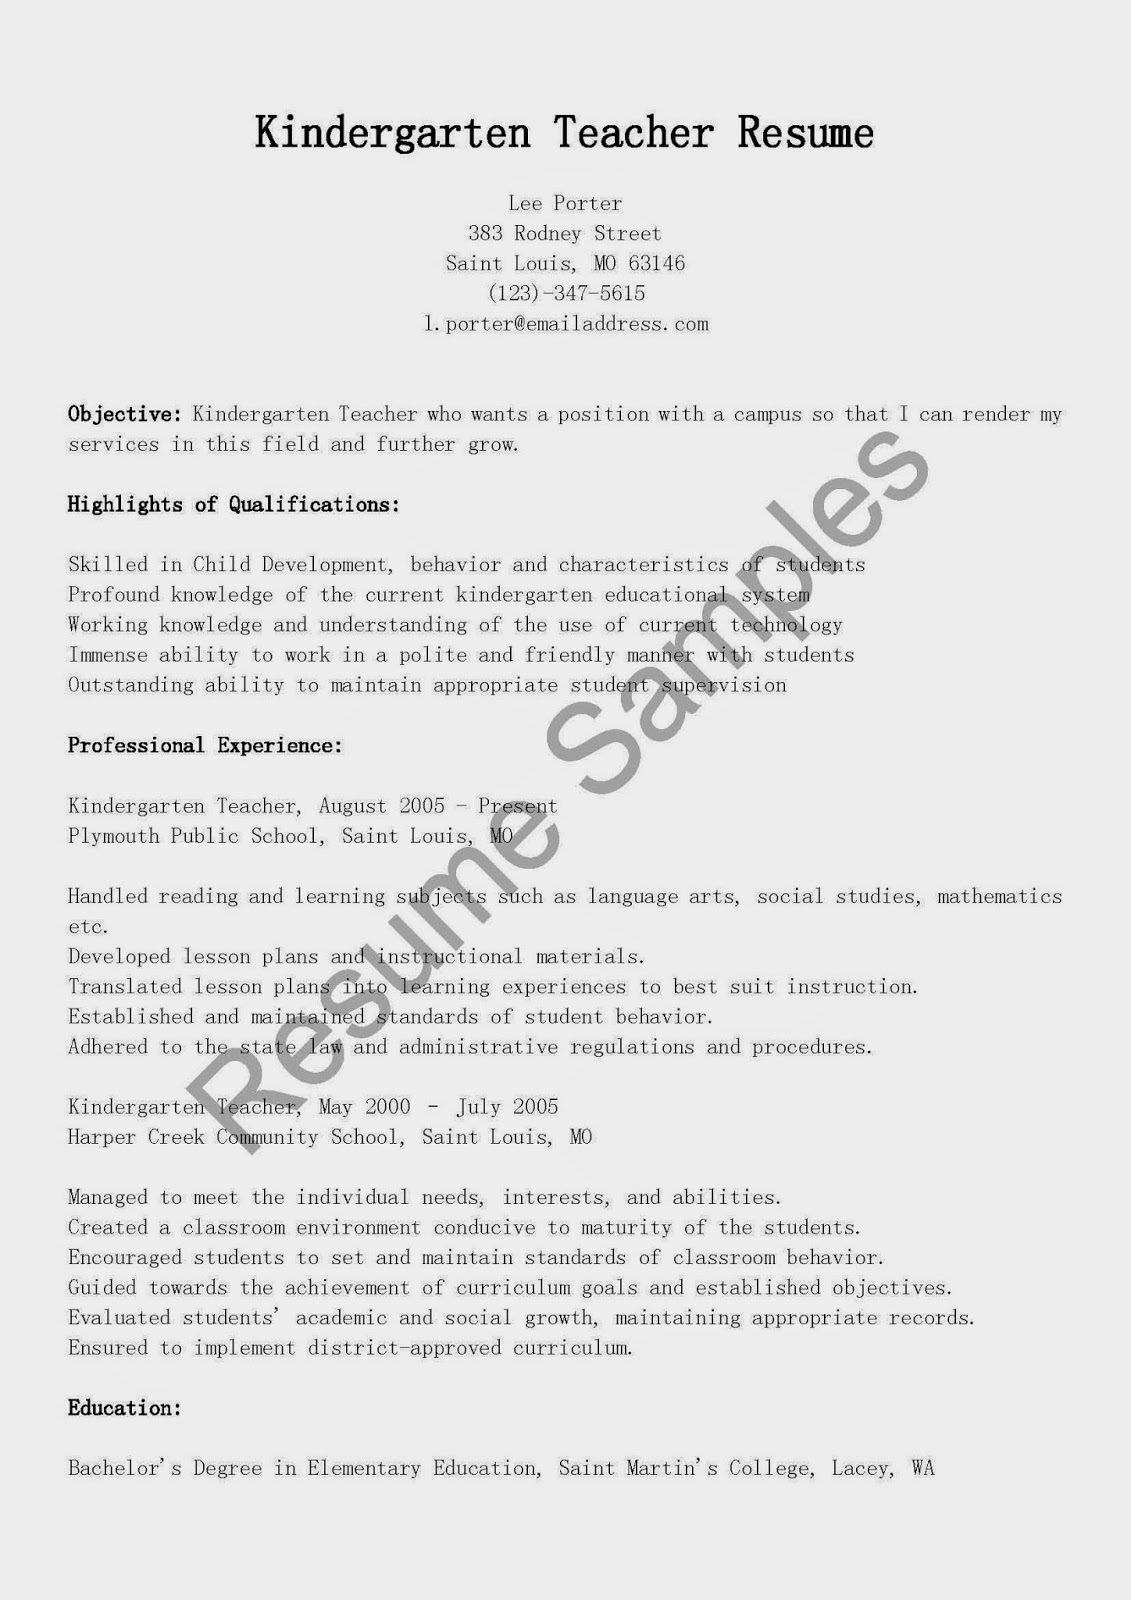 Sample it resumessume samples kindergarten teacher resume sample resume samples kindergarten teacher resume sample spiritdancerdesigns Choice Image